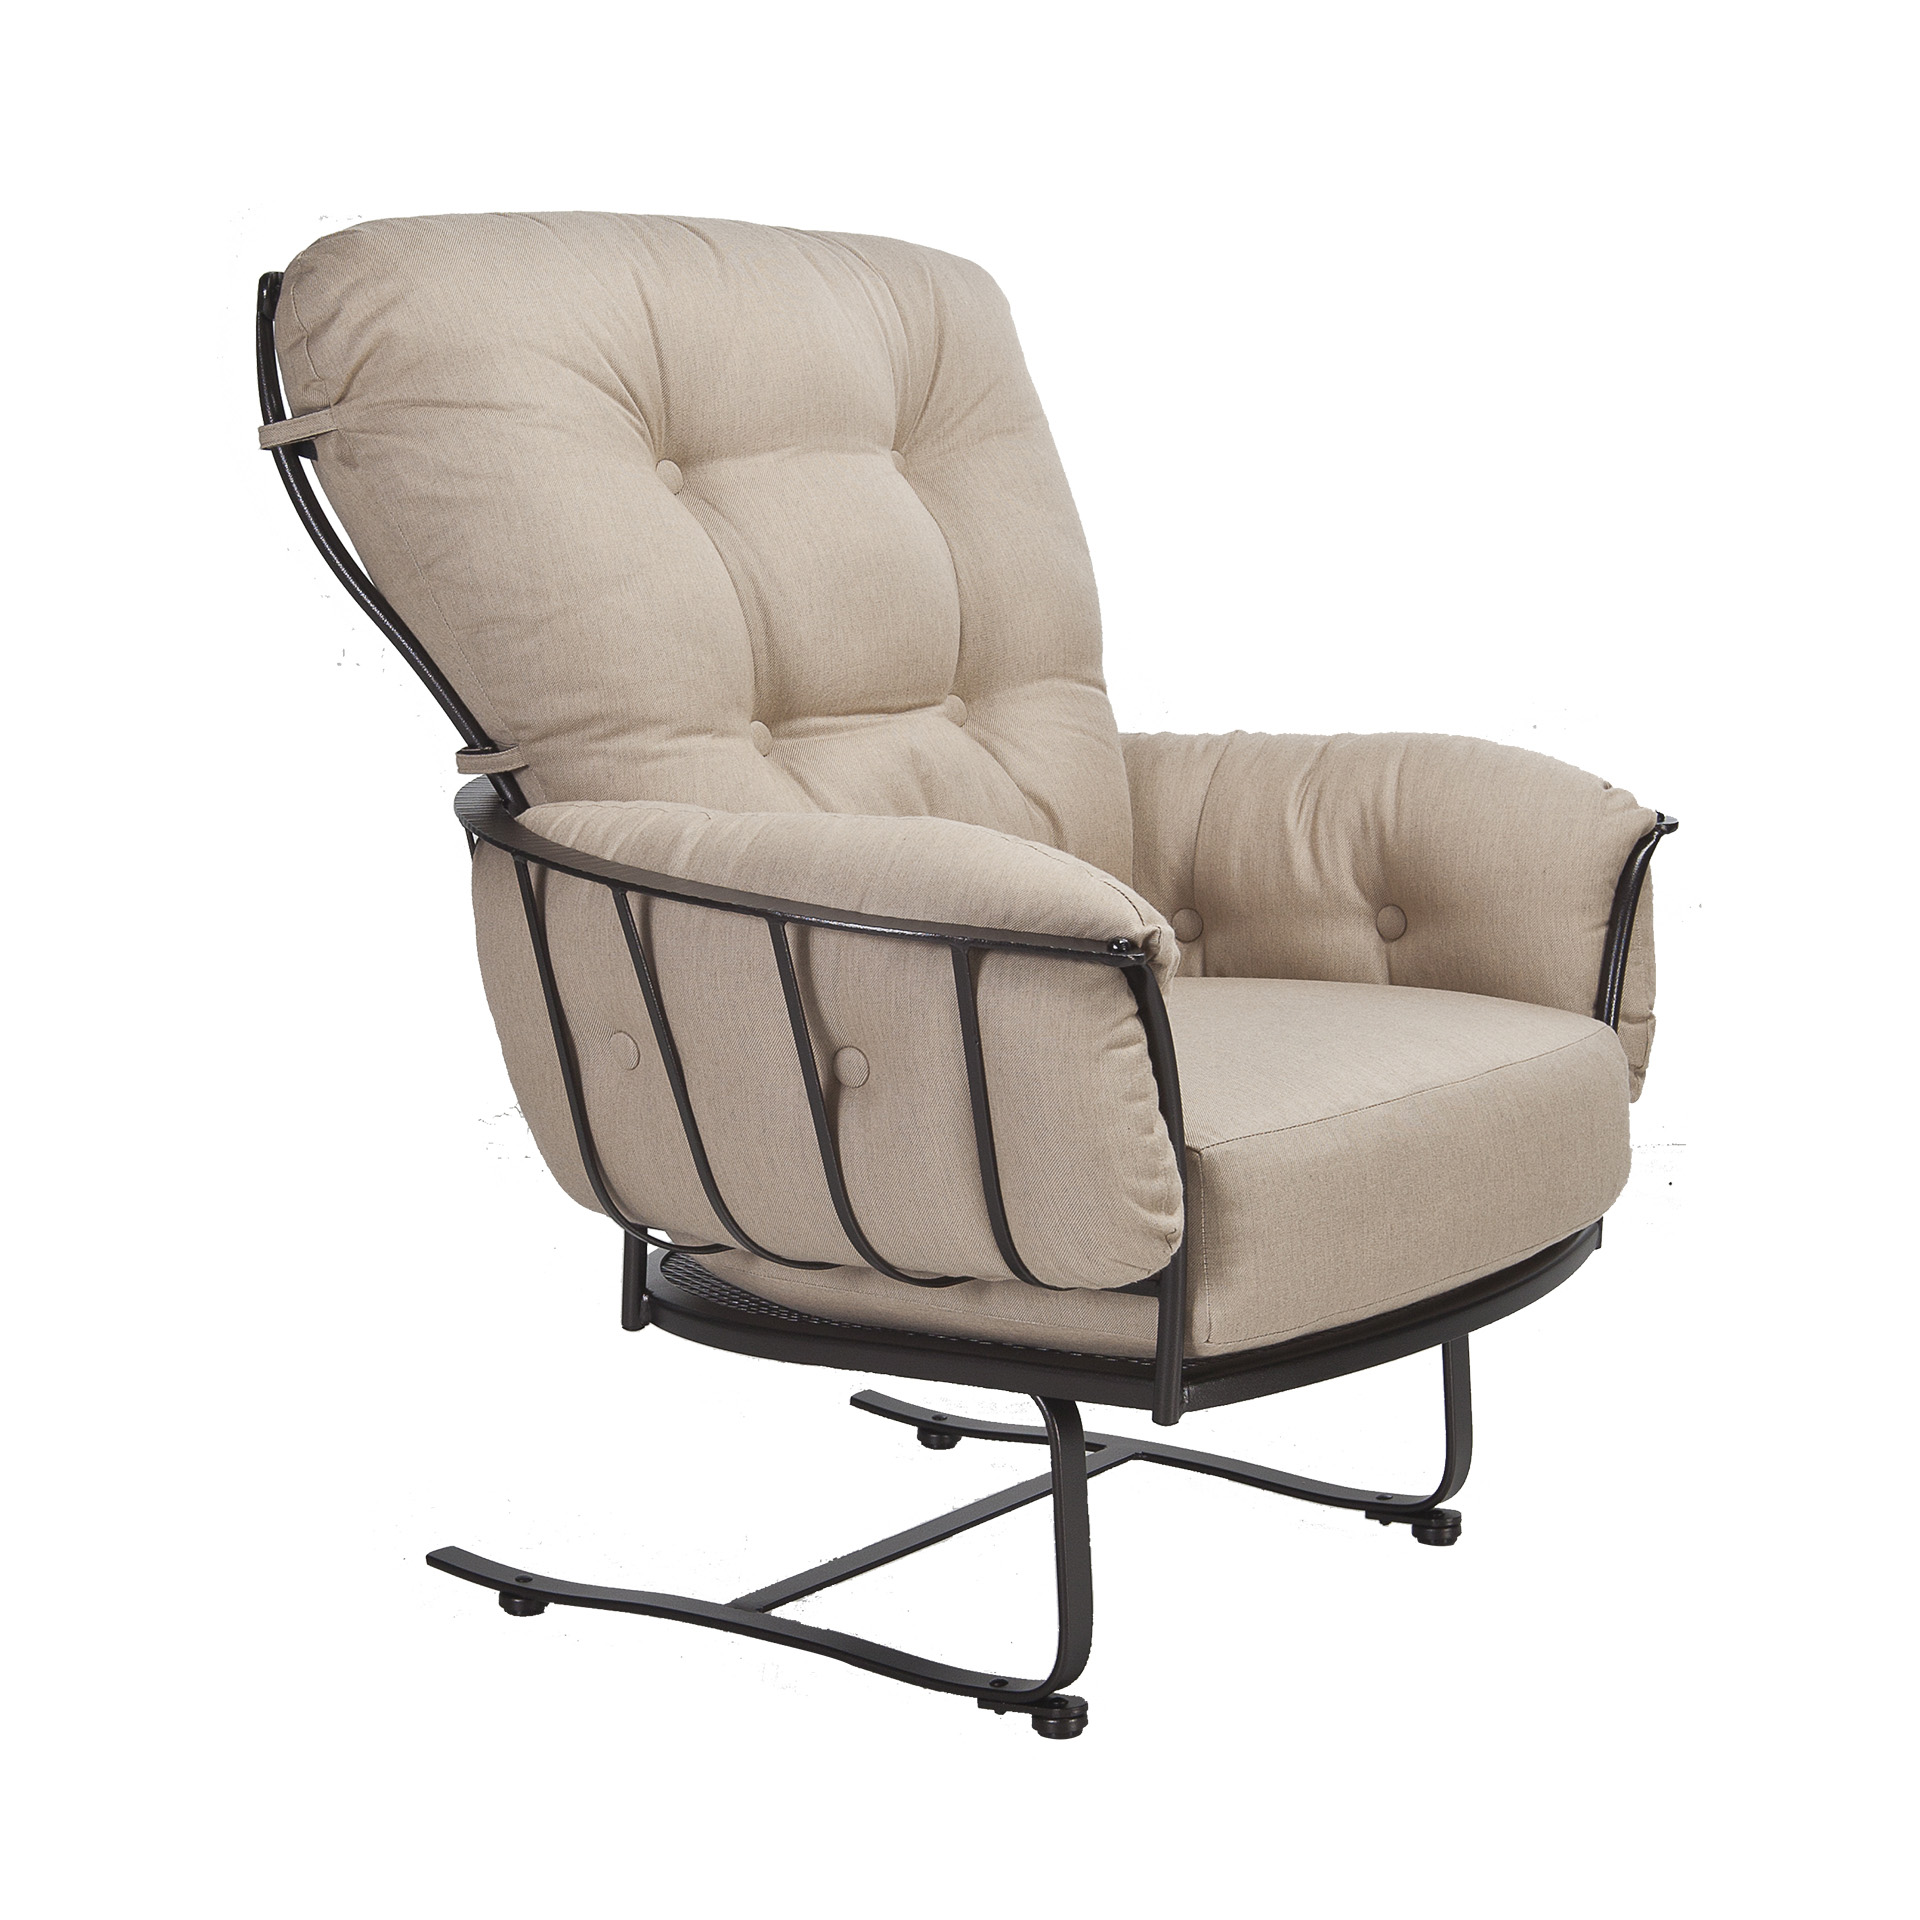 Spring Base Lounge Chair Fishbecks Patio Furniture Store